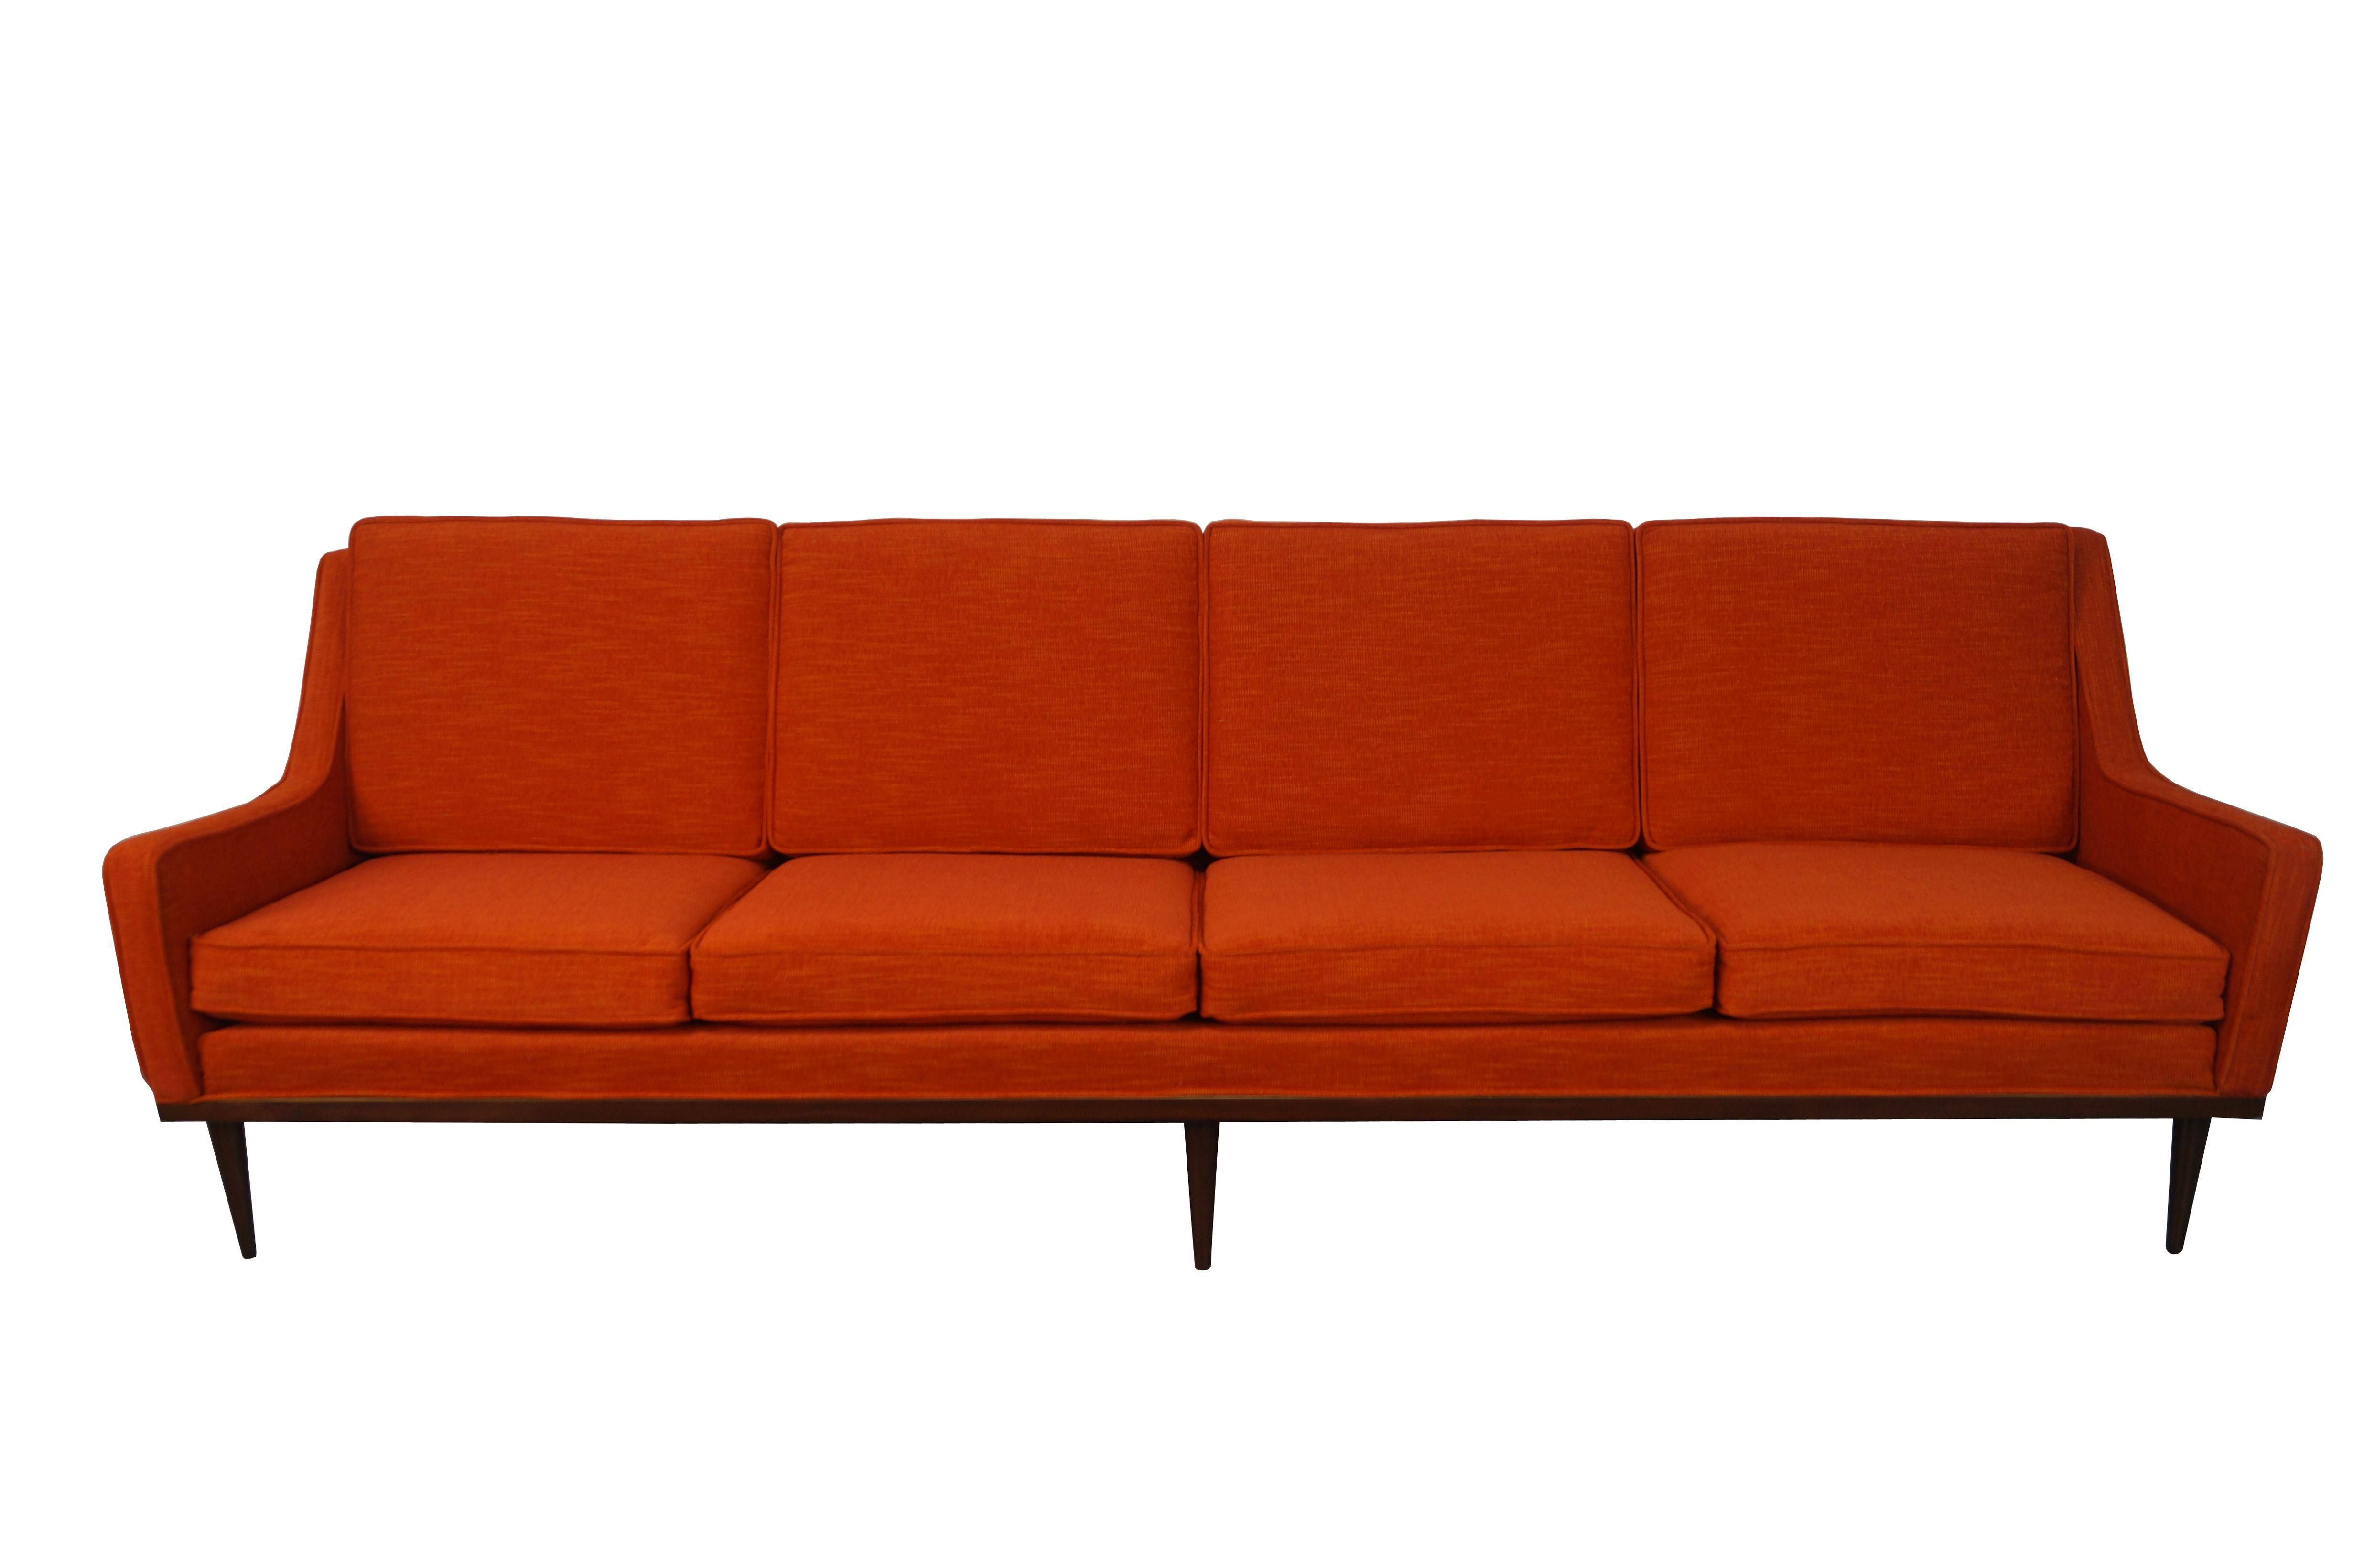 Loose cushions on a four seater sofa with walnut base designed by Milo Baughman for James Inc. A divine sofa with classic Mid-Century style tapered legs. A gorgeous addition for any space in need of vintage fabulousness!